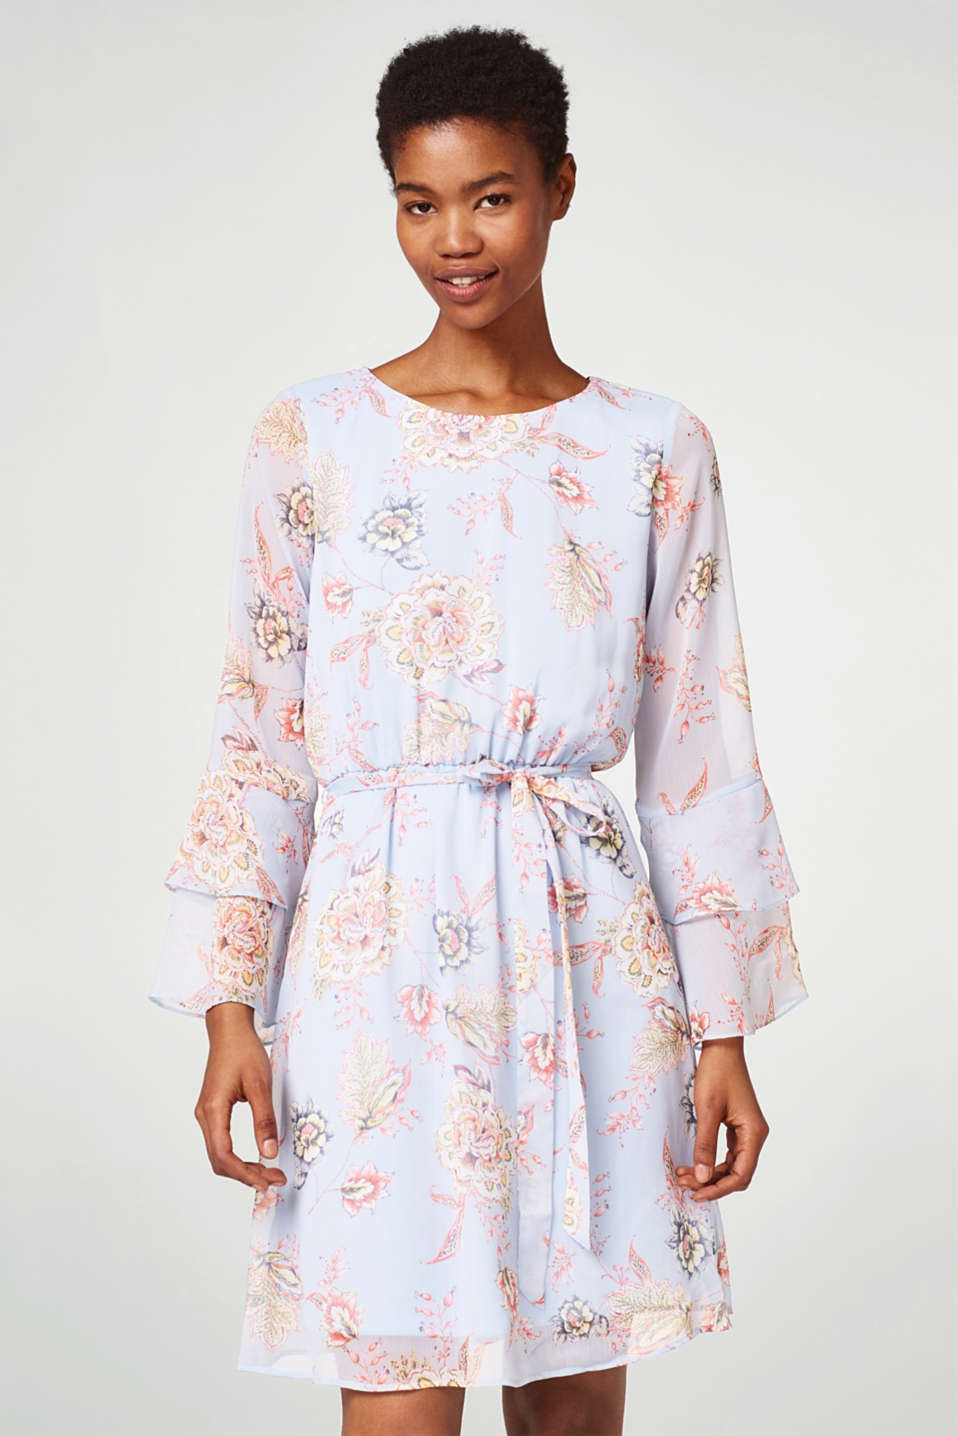 Esprit - Flowery dress in delicate crinkle chiffon